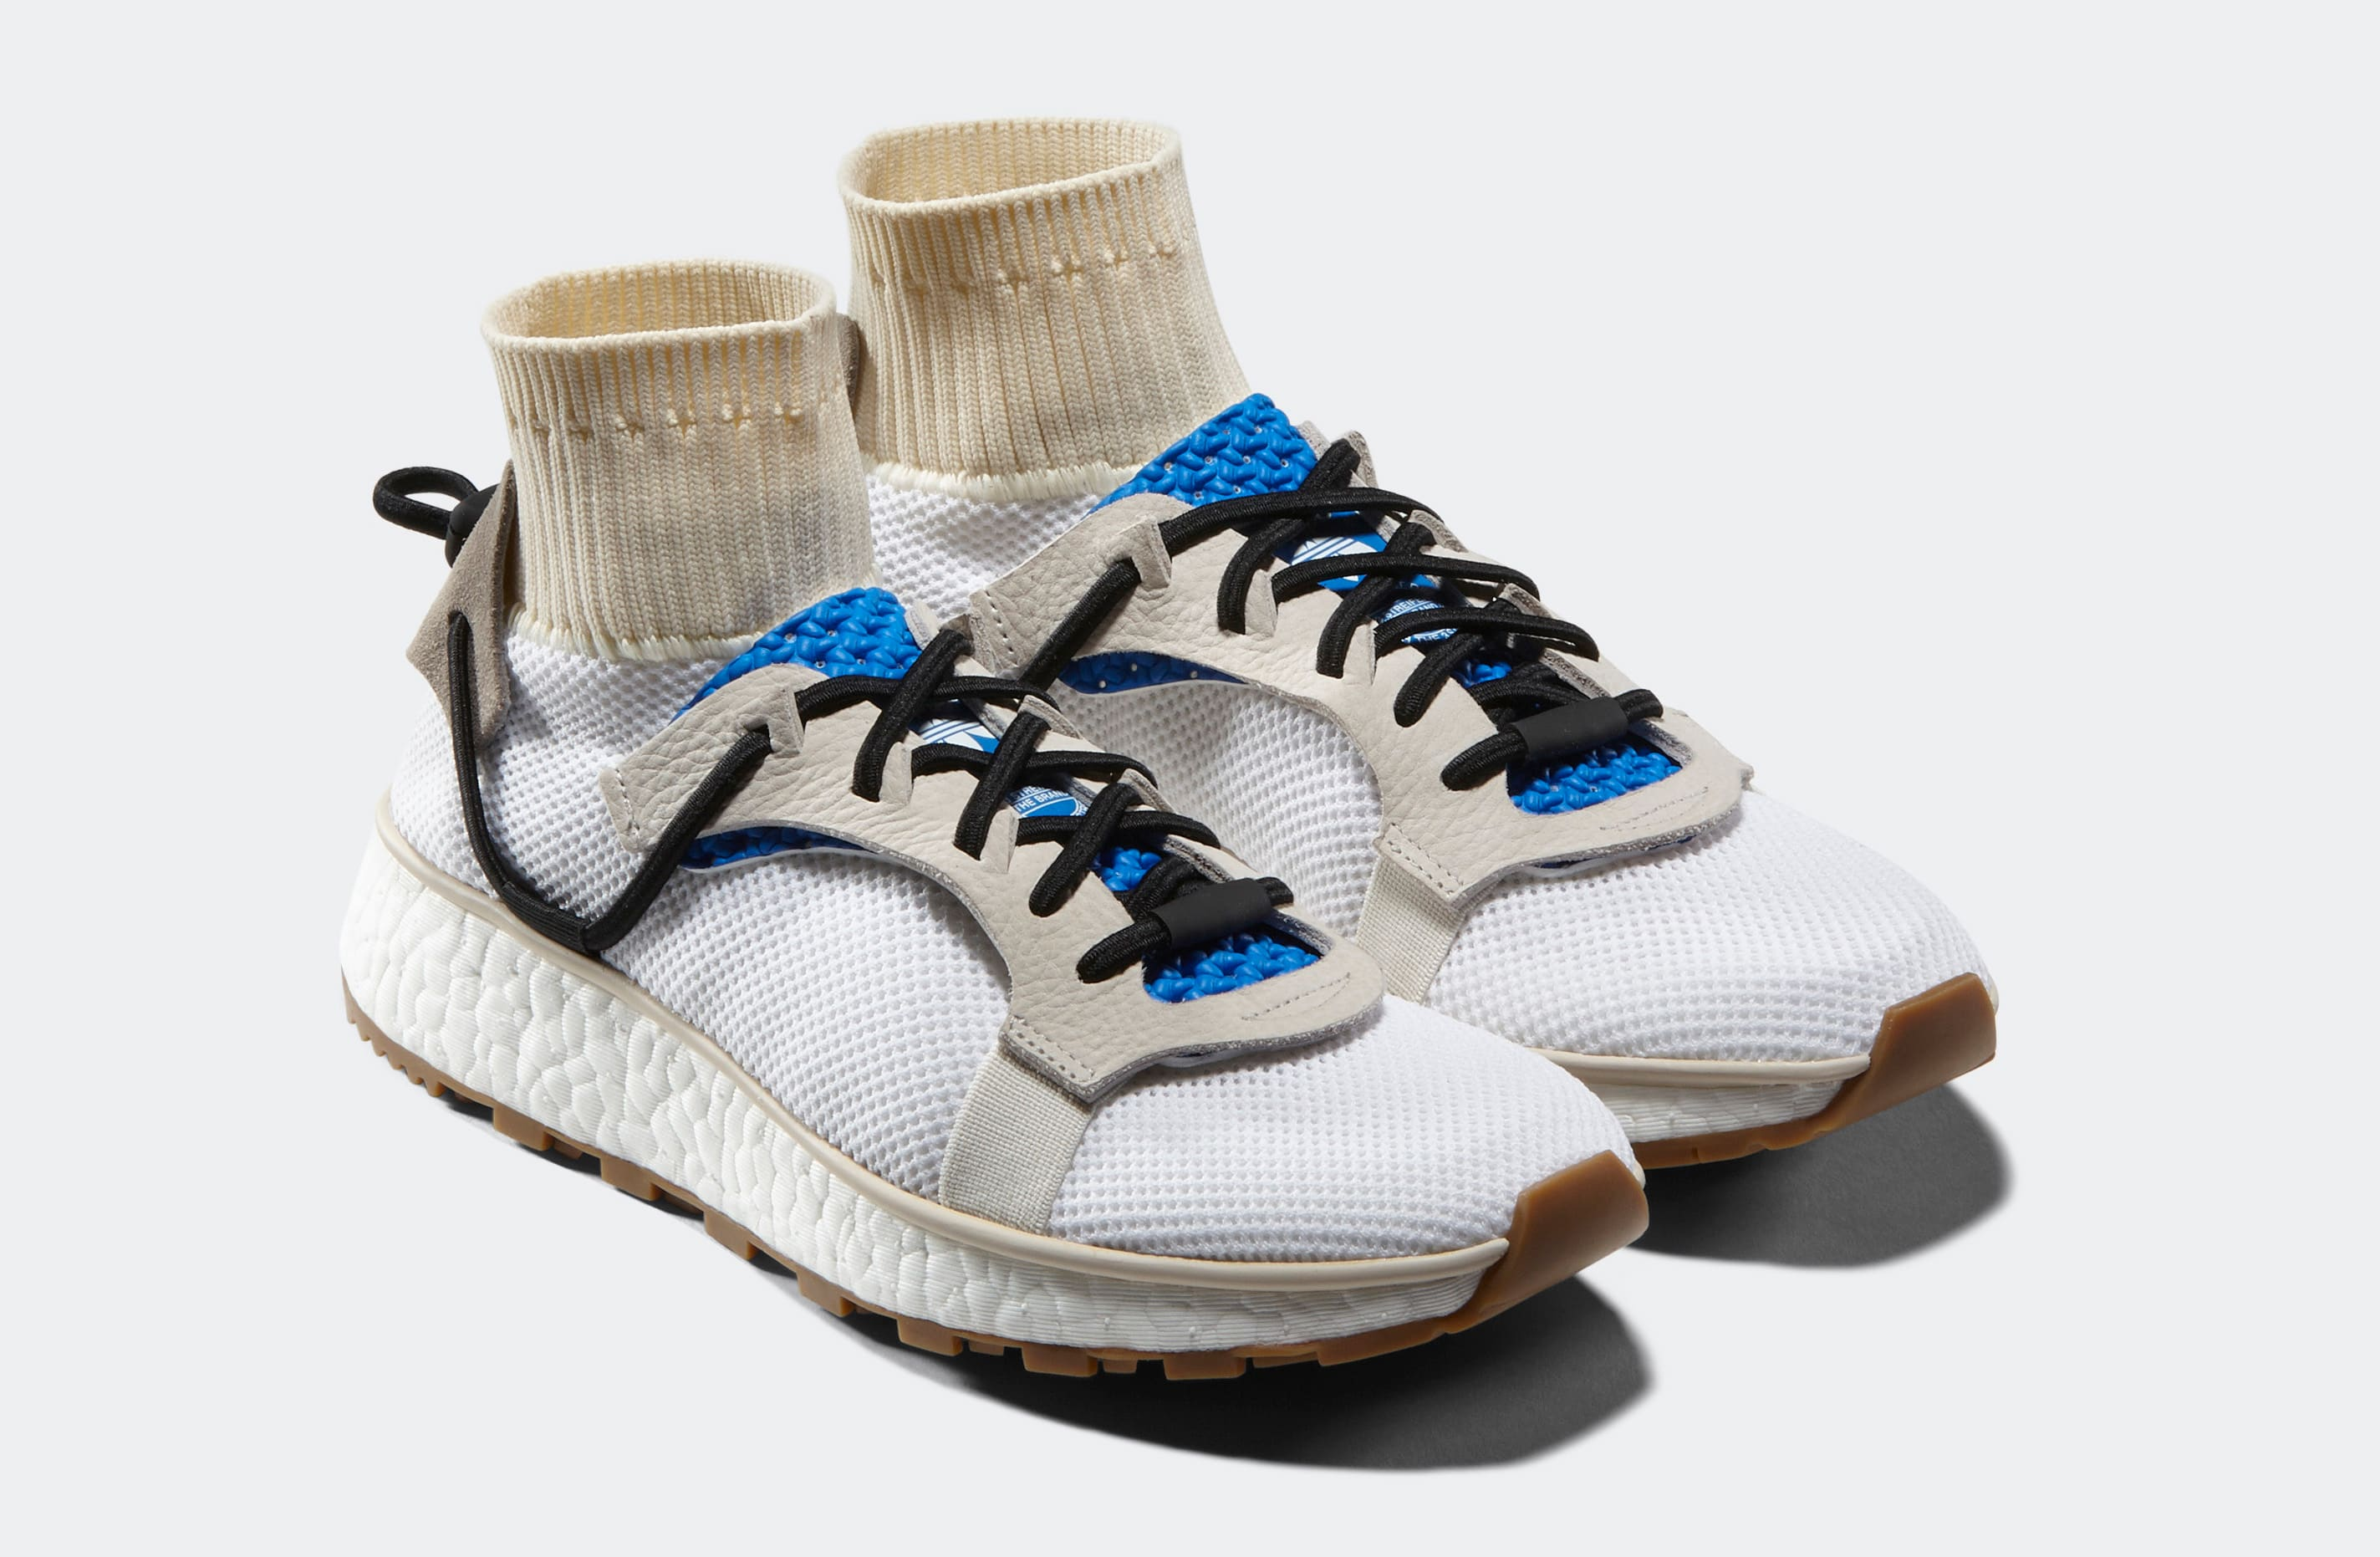 Alexander Wang Adidas Second Collection | Sole Collector